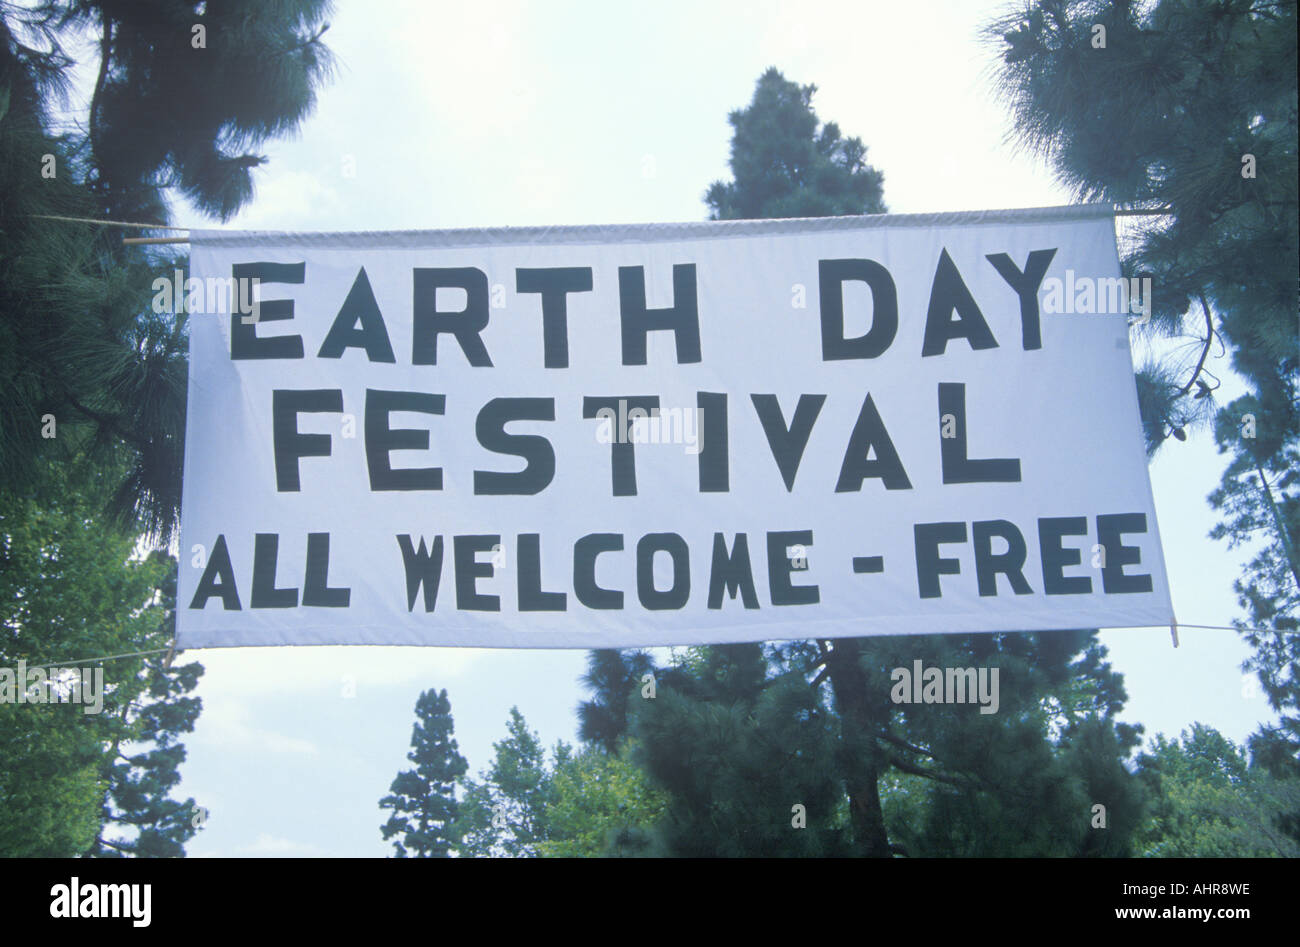 A hanging sign welcoming people to the Earth Day Festival - Stock Image